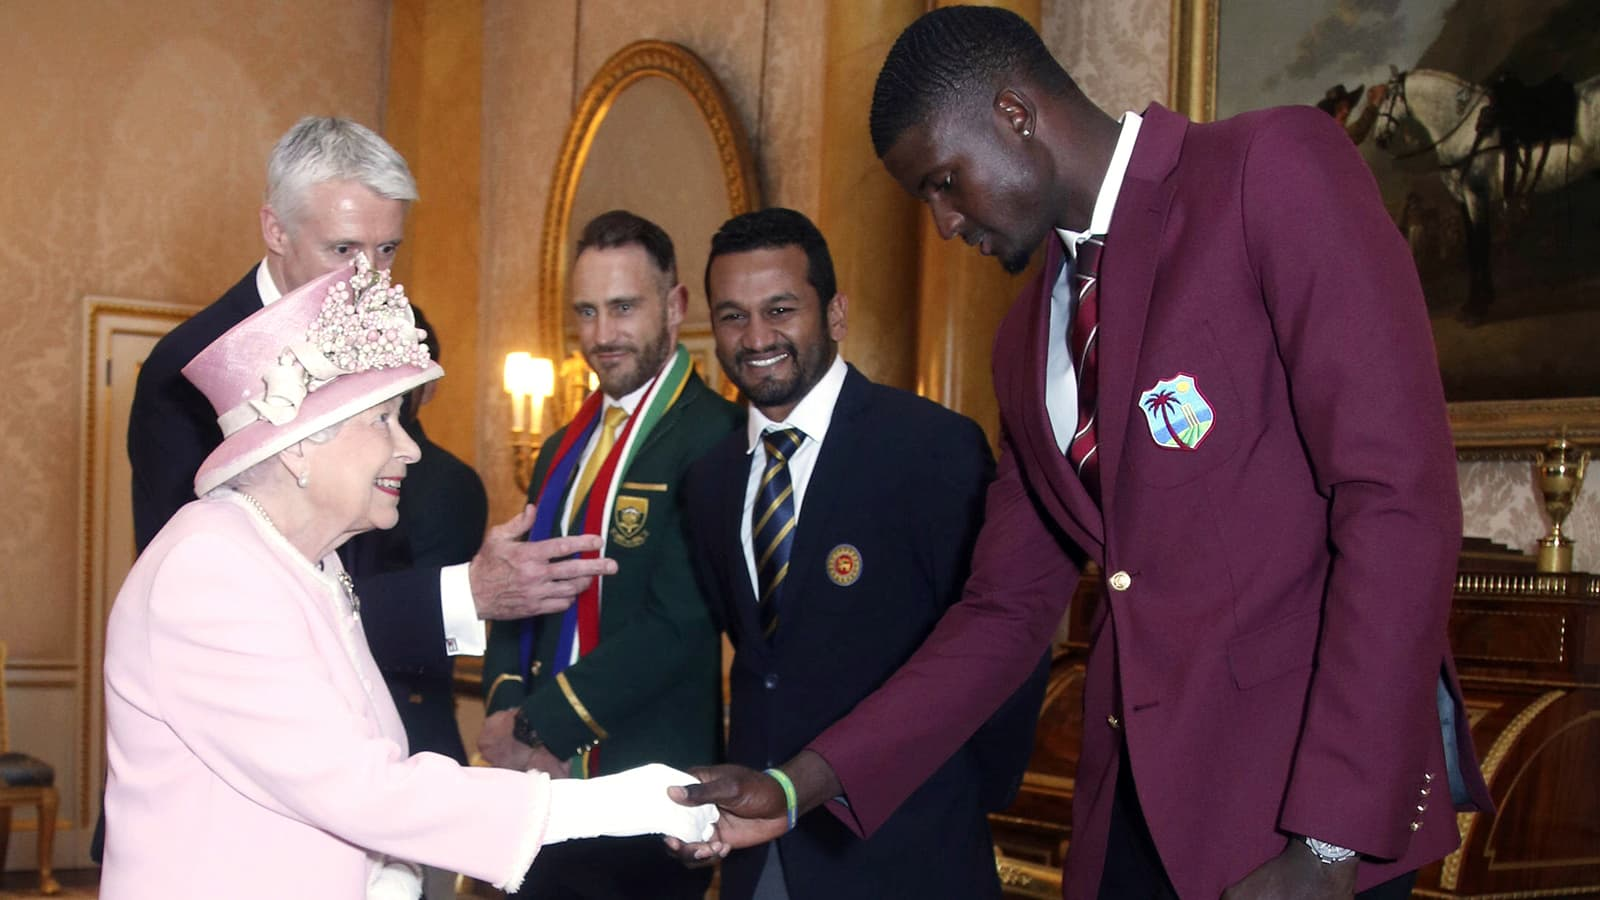 Britain's Queen Elizabeth meets West Indies cricket captain Jason Holder, right, South Africa cricket captain Francois du Plessis, left, and Sri Lanka captain Dimuth Karunaratne during a Royal Garden Party at Buckingham Palace in London on May 29. — AP